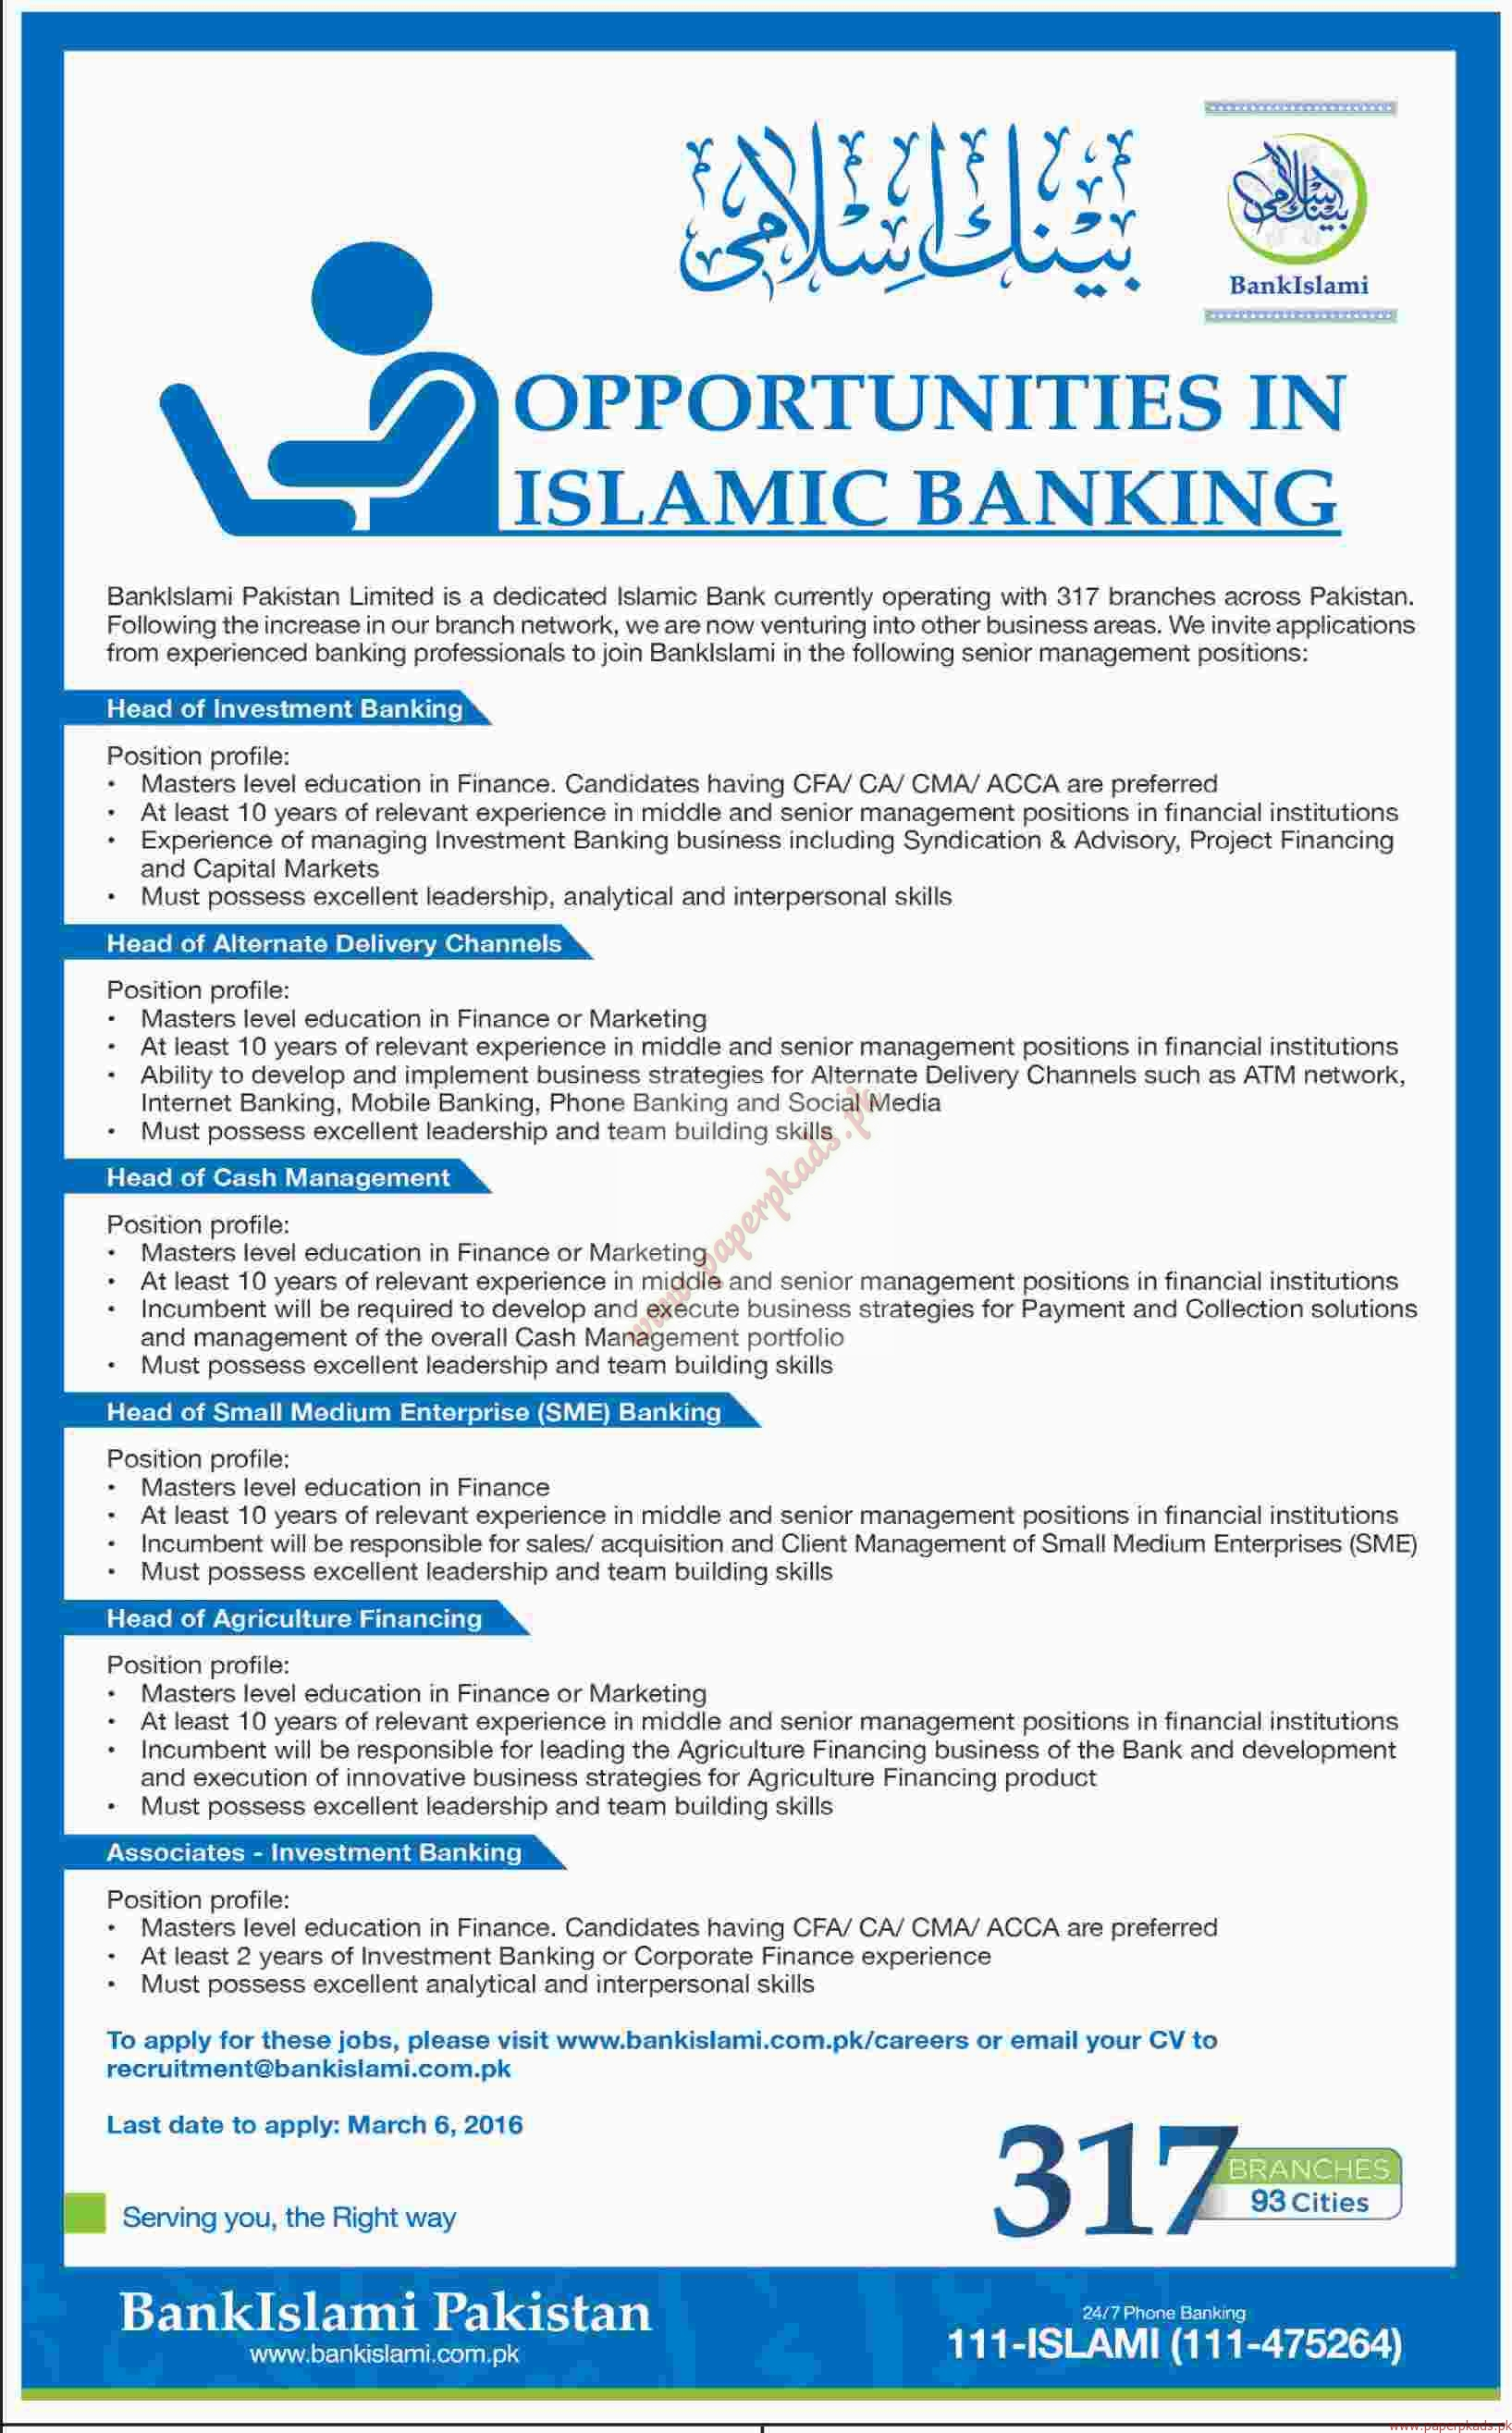 uif essay competition islamic banking essay otherpapers com more